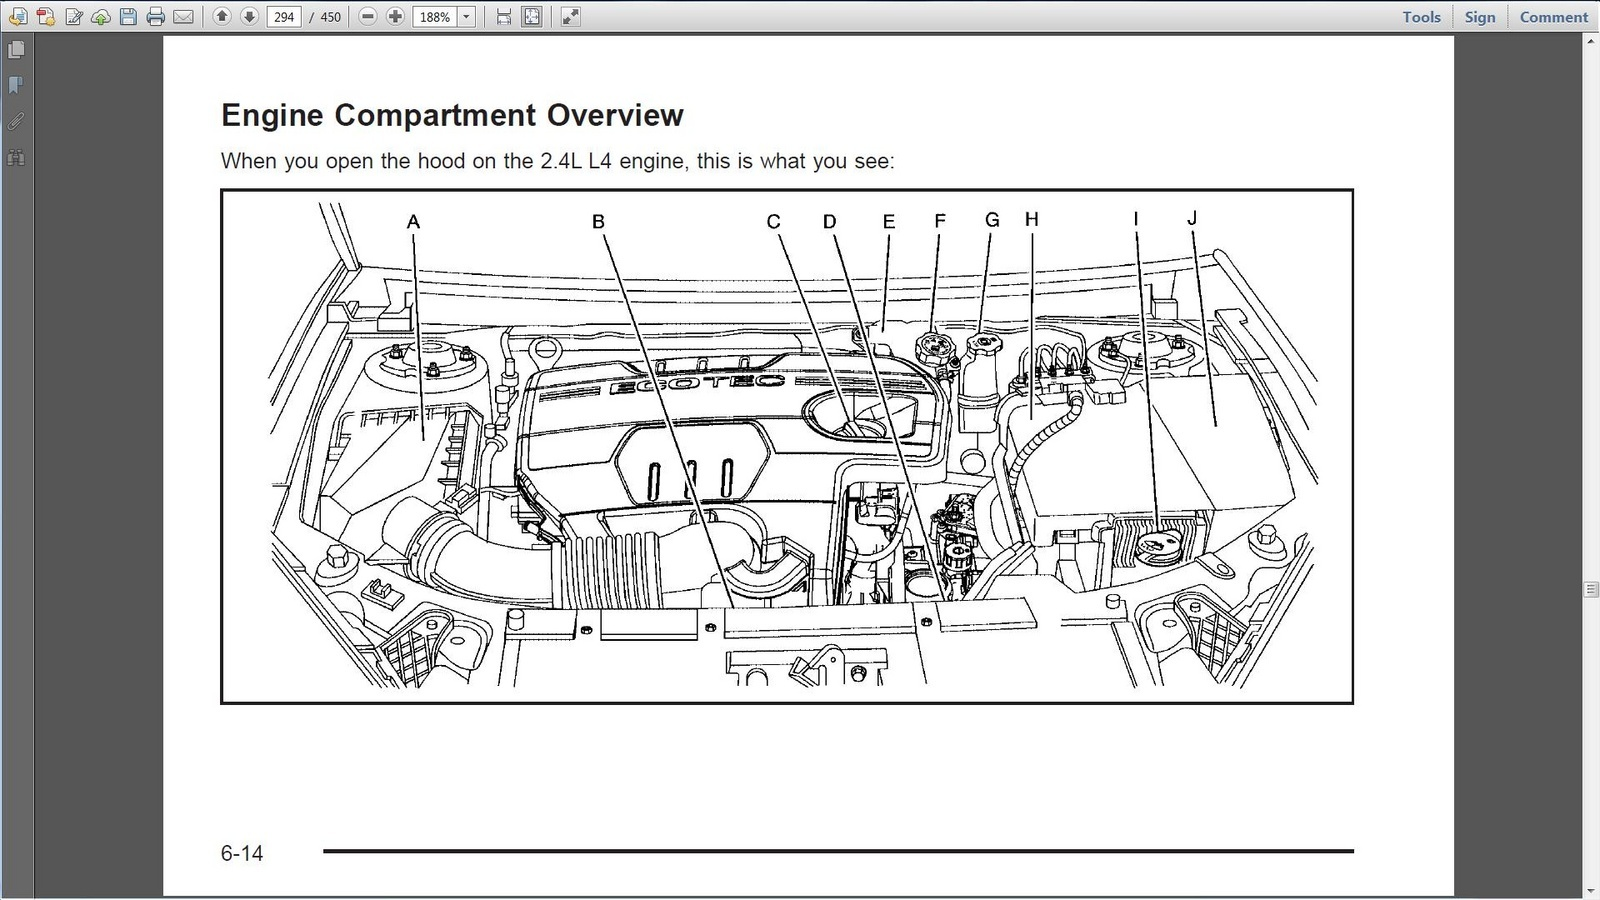 hight resolution of 2002 chevy impala engine diagram wiring diagram datasource 2002 impala engine diagram 2002 impala engine diagram